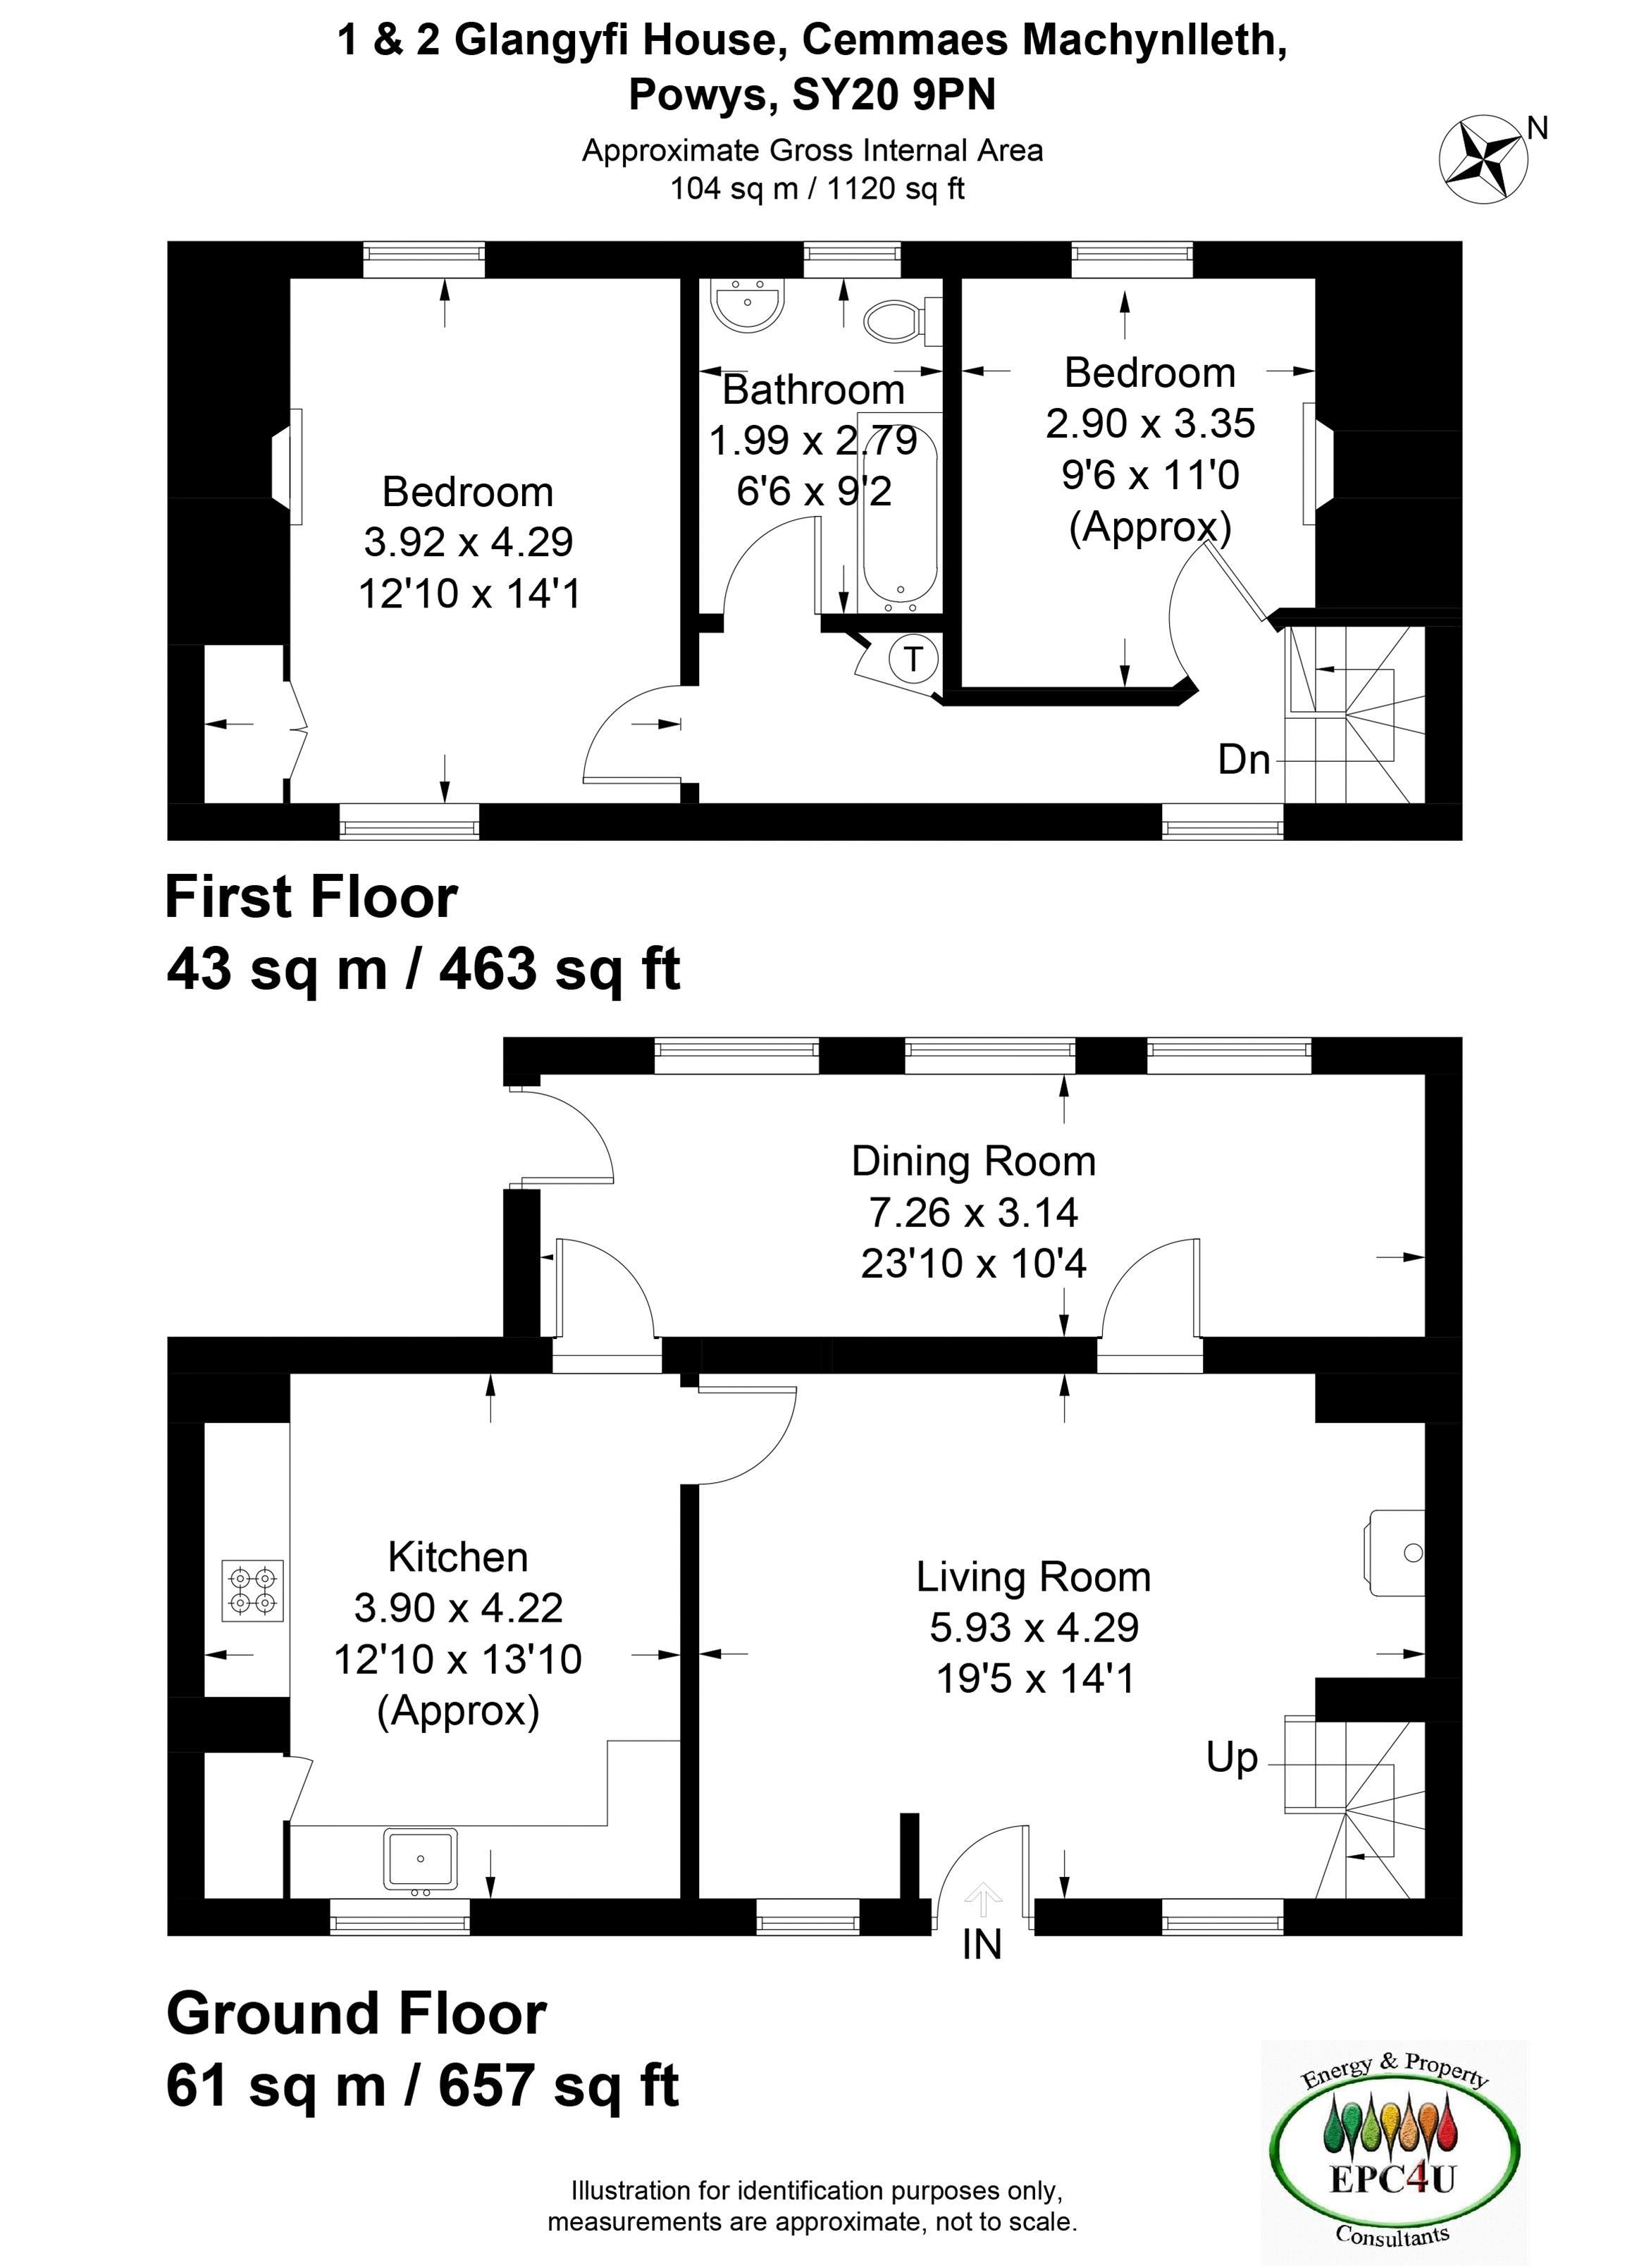 1 & 2 Glandyfi House Floorplan